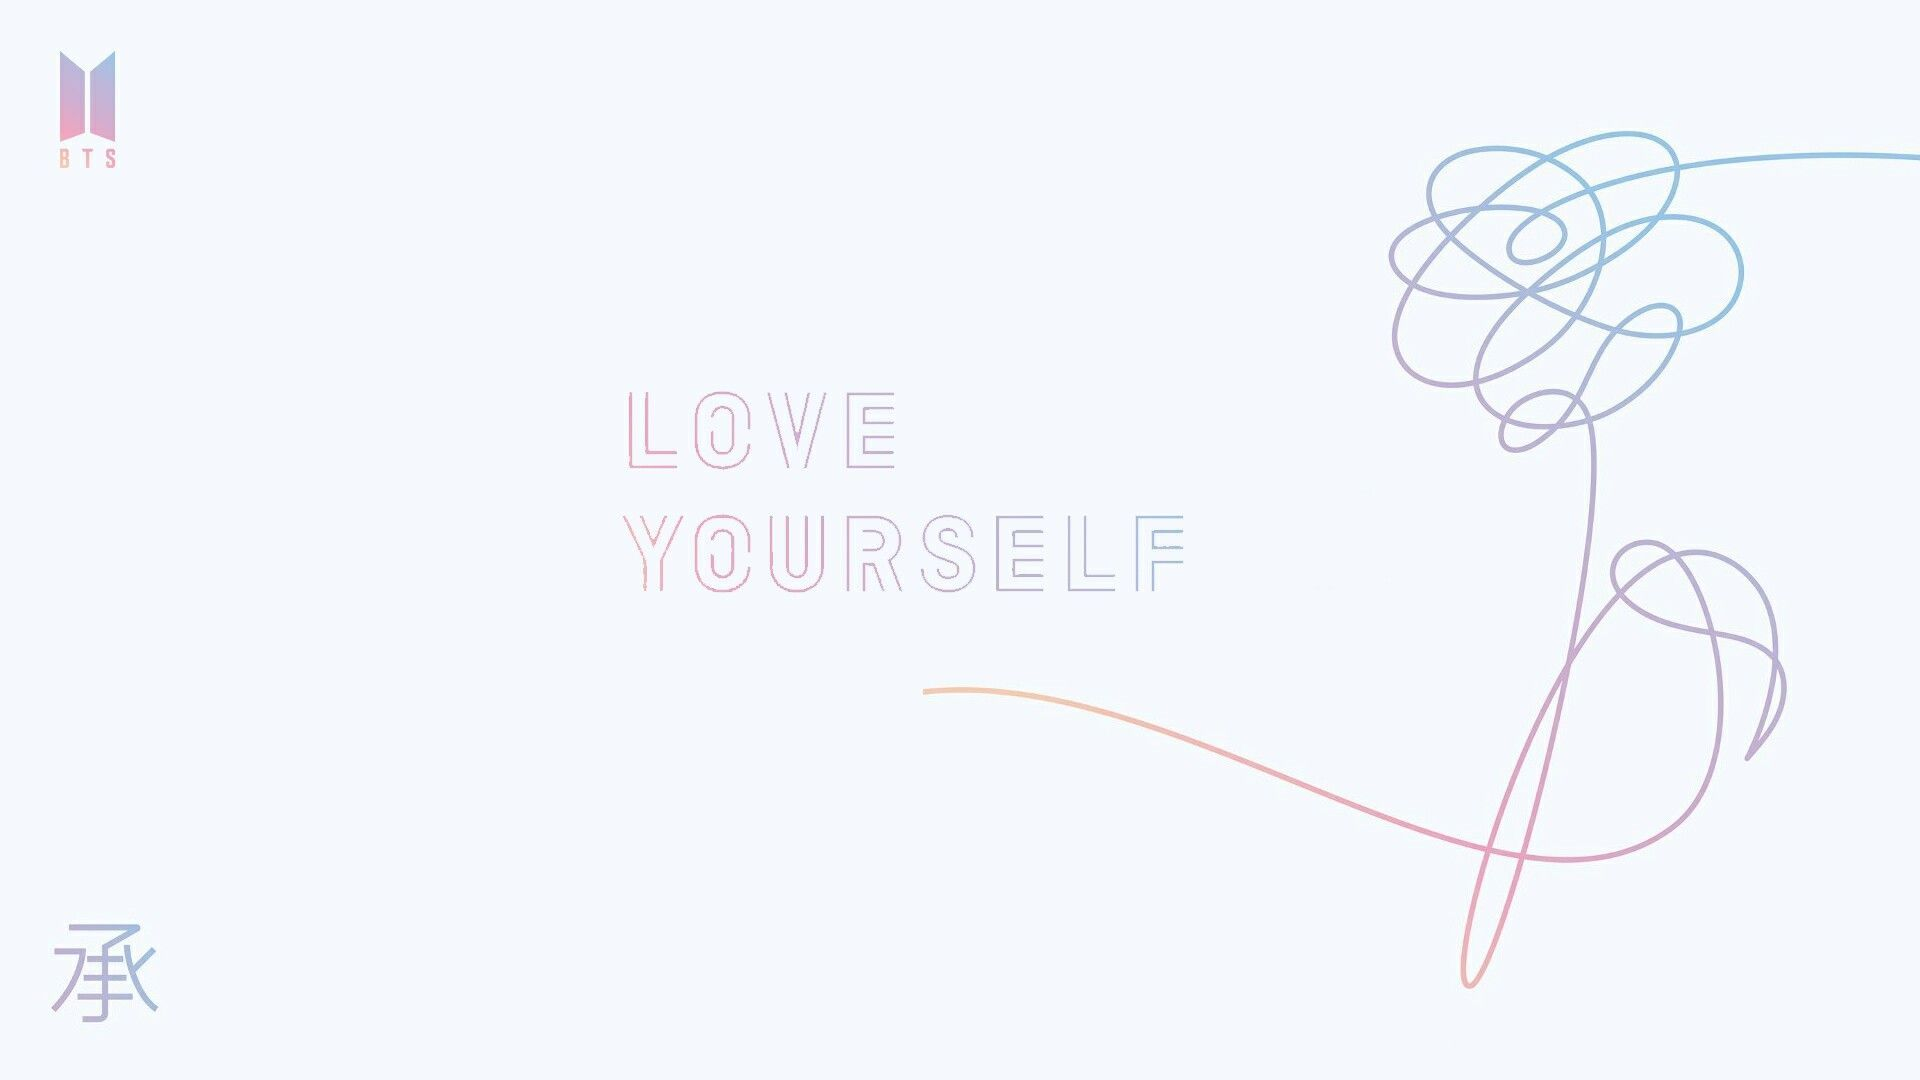 1920x1080 Bts Love Yourself Pc Wallpaper By Me Bts Pinterest Bts Bts Love Yourself Bts Wallpaper Wallpaper